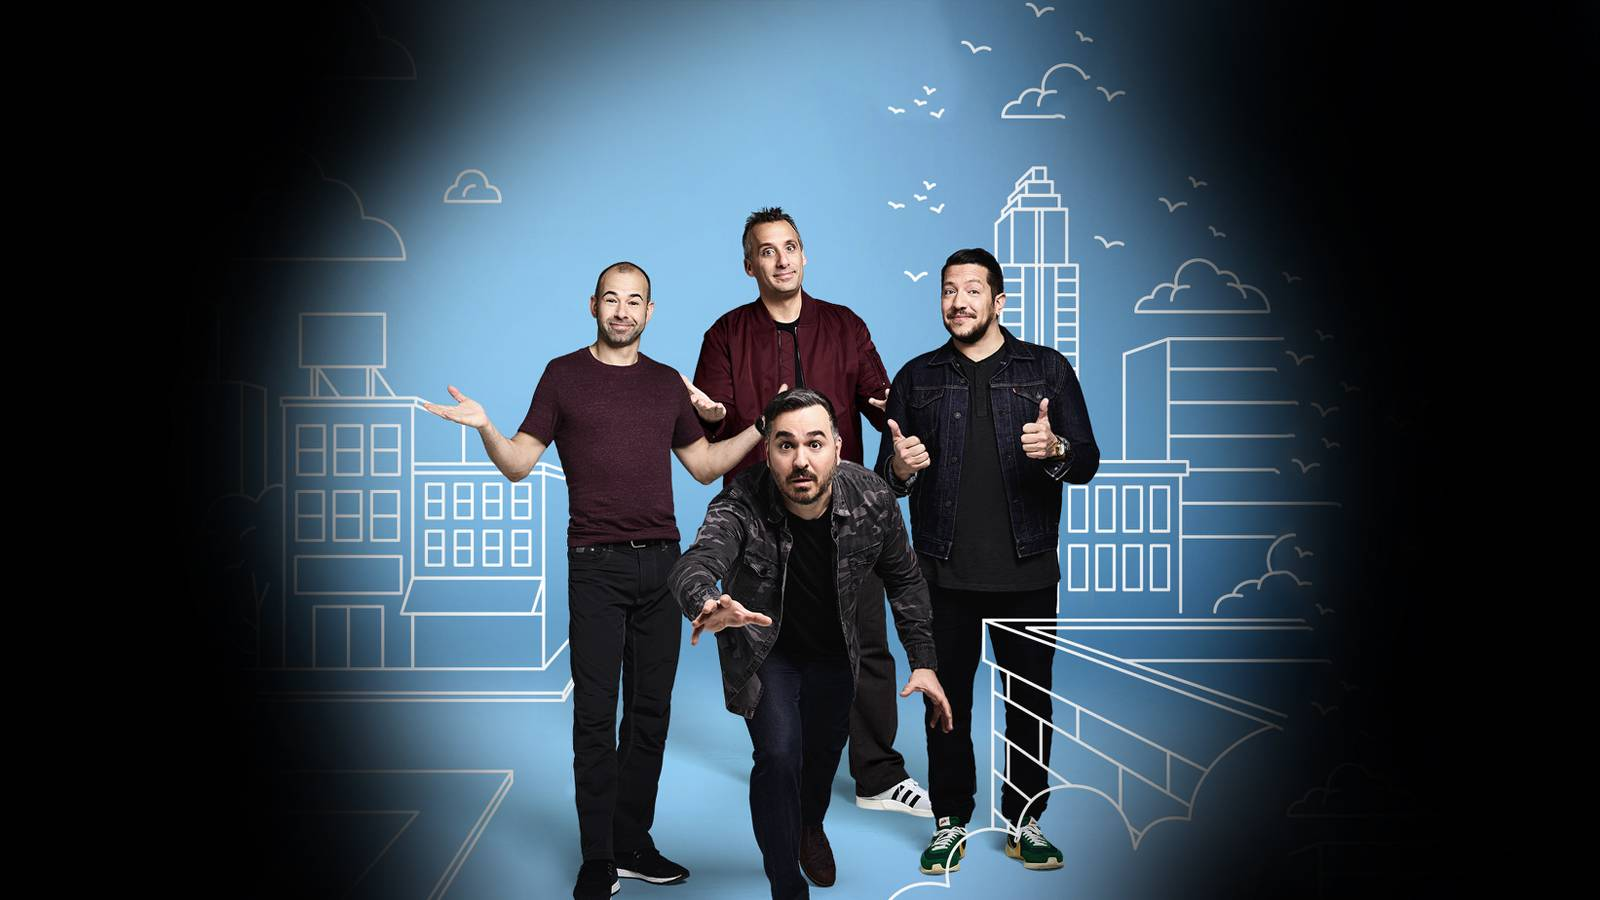 Impractical Jokers (16+ Event) (Rescheduled from 8/12/2020)